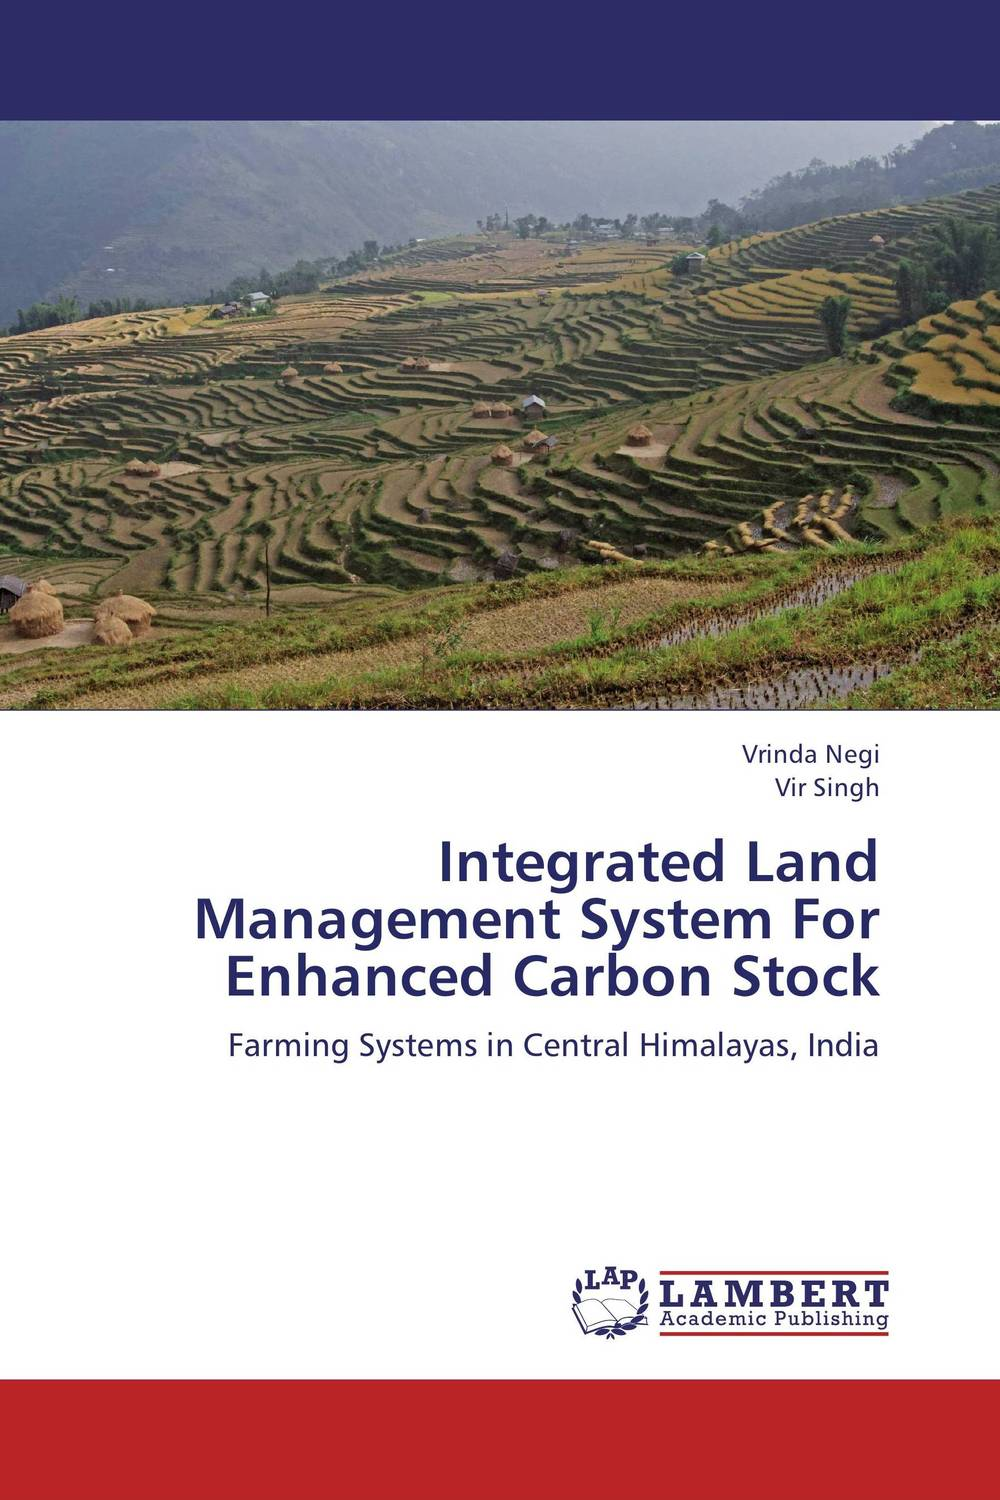 Integrated Land Management System For Enhanced Carbon Stock